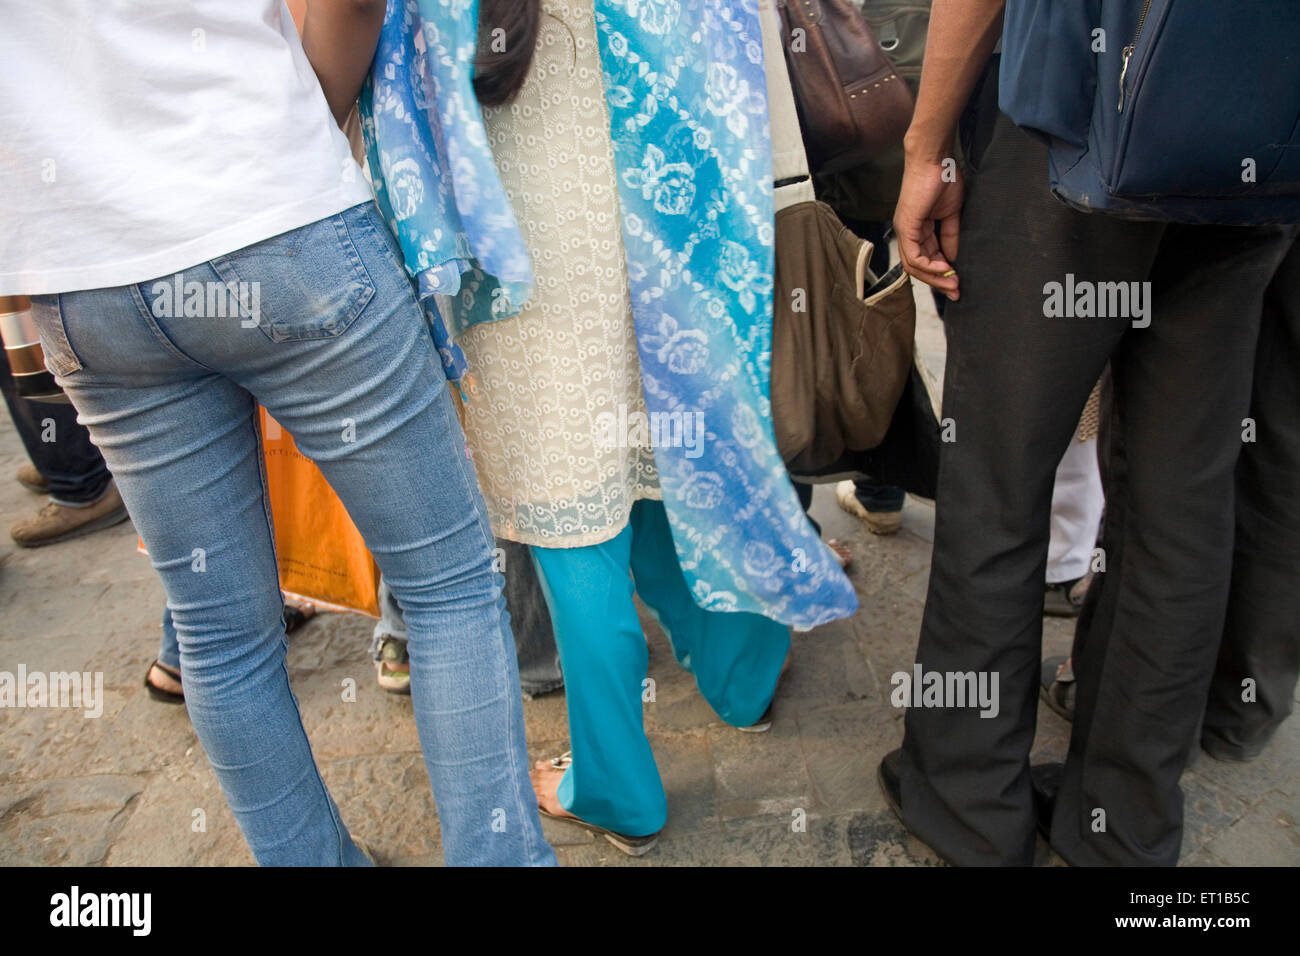 3rd December ; young students Gateway protesting against terror attacks 26th November 2008 in Bombay - Stock Image